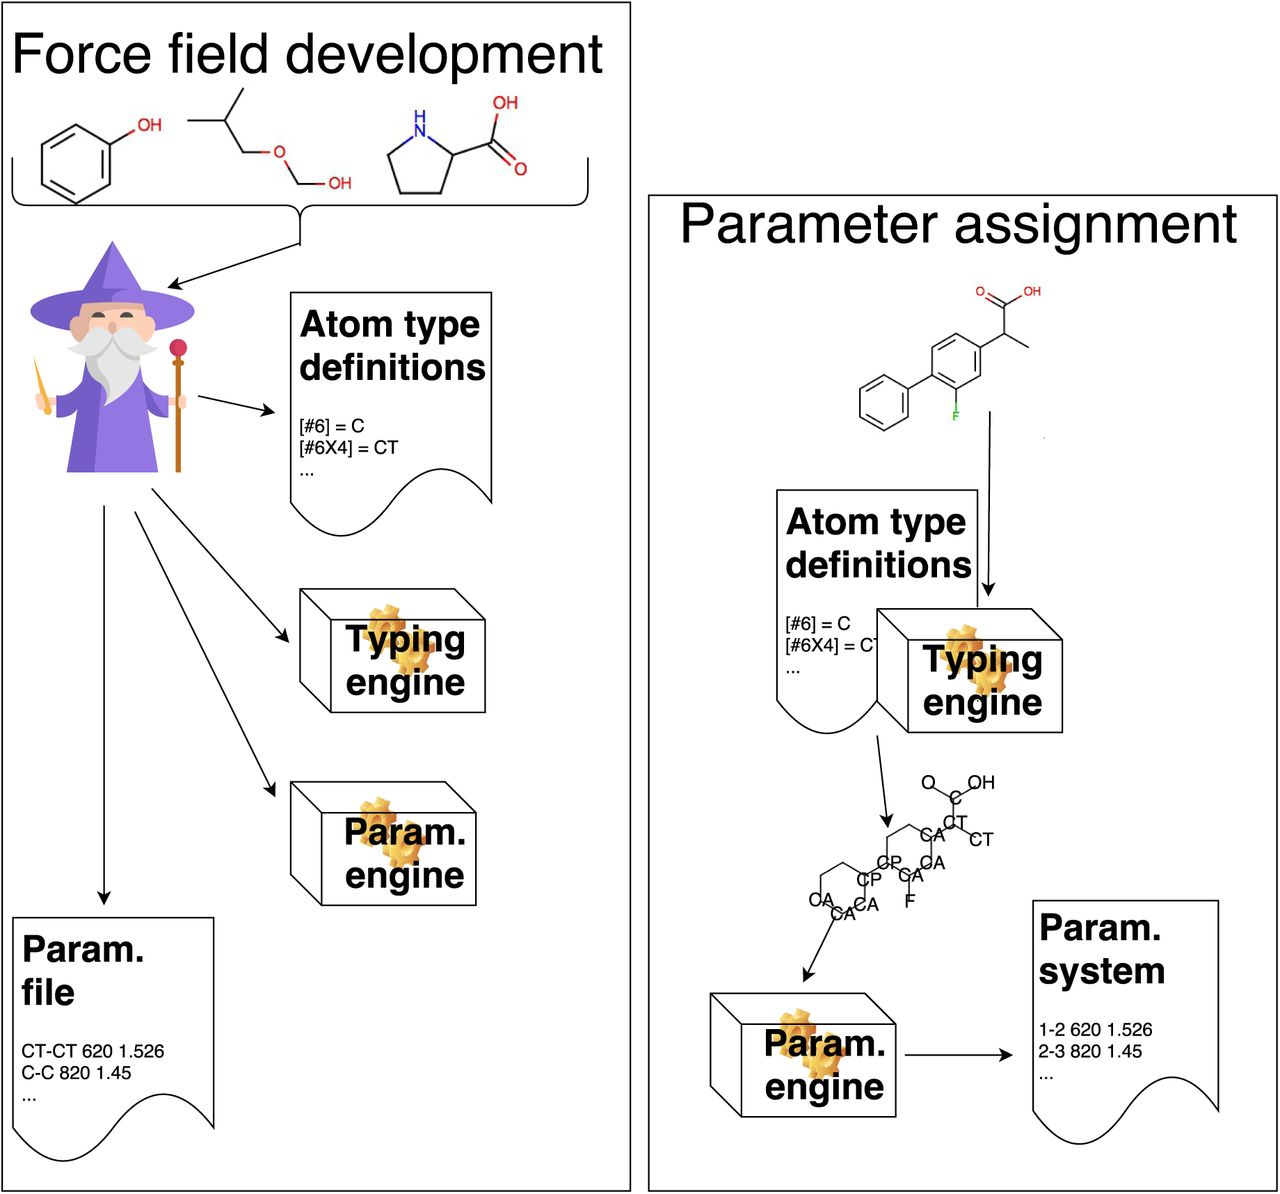 Open Force Field Consortium: Escaping atom types using direct